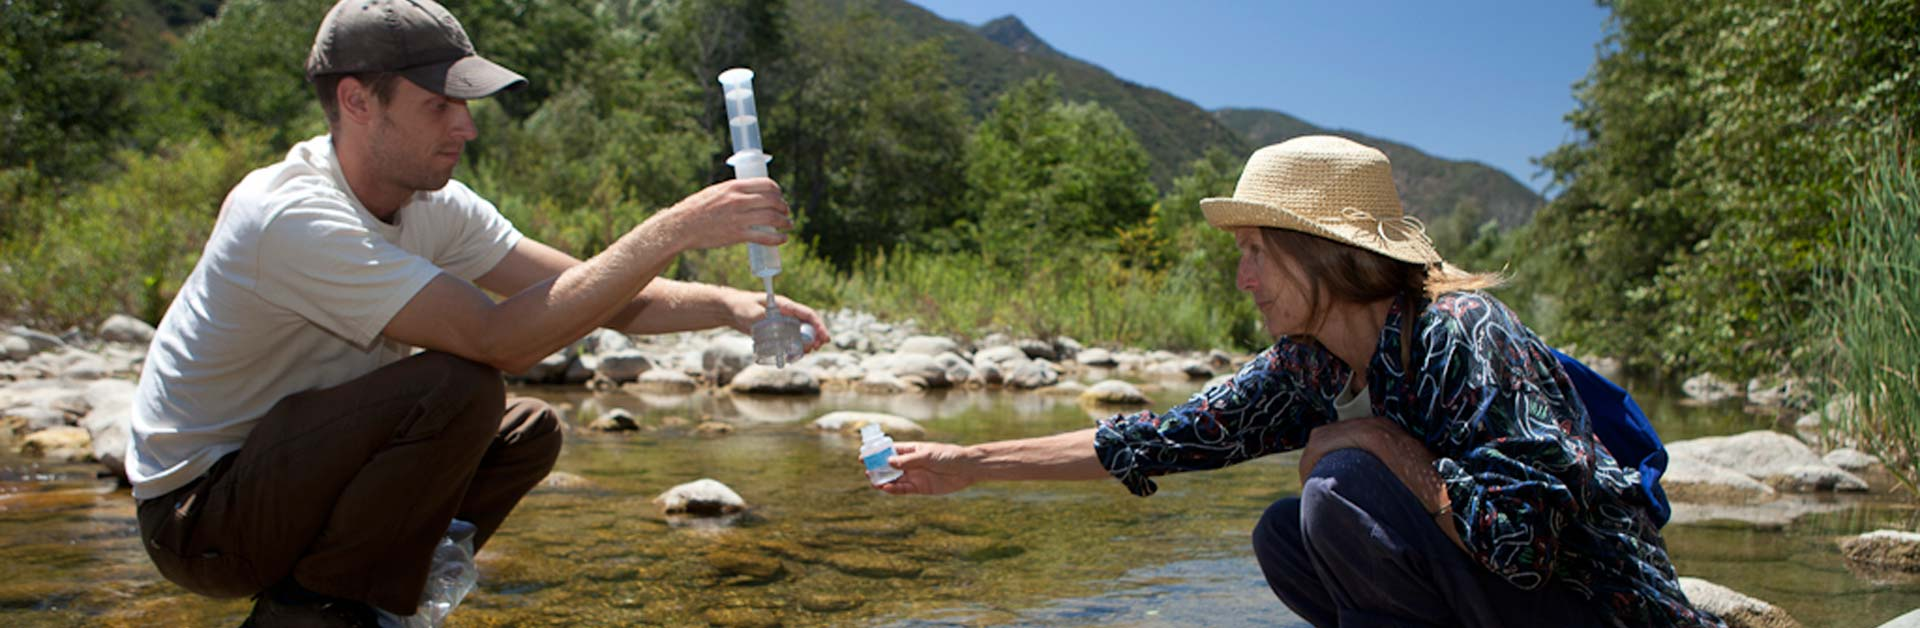 Two Santa Barbara Channelkeeper team members collecting water samples in the Ventura River.